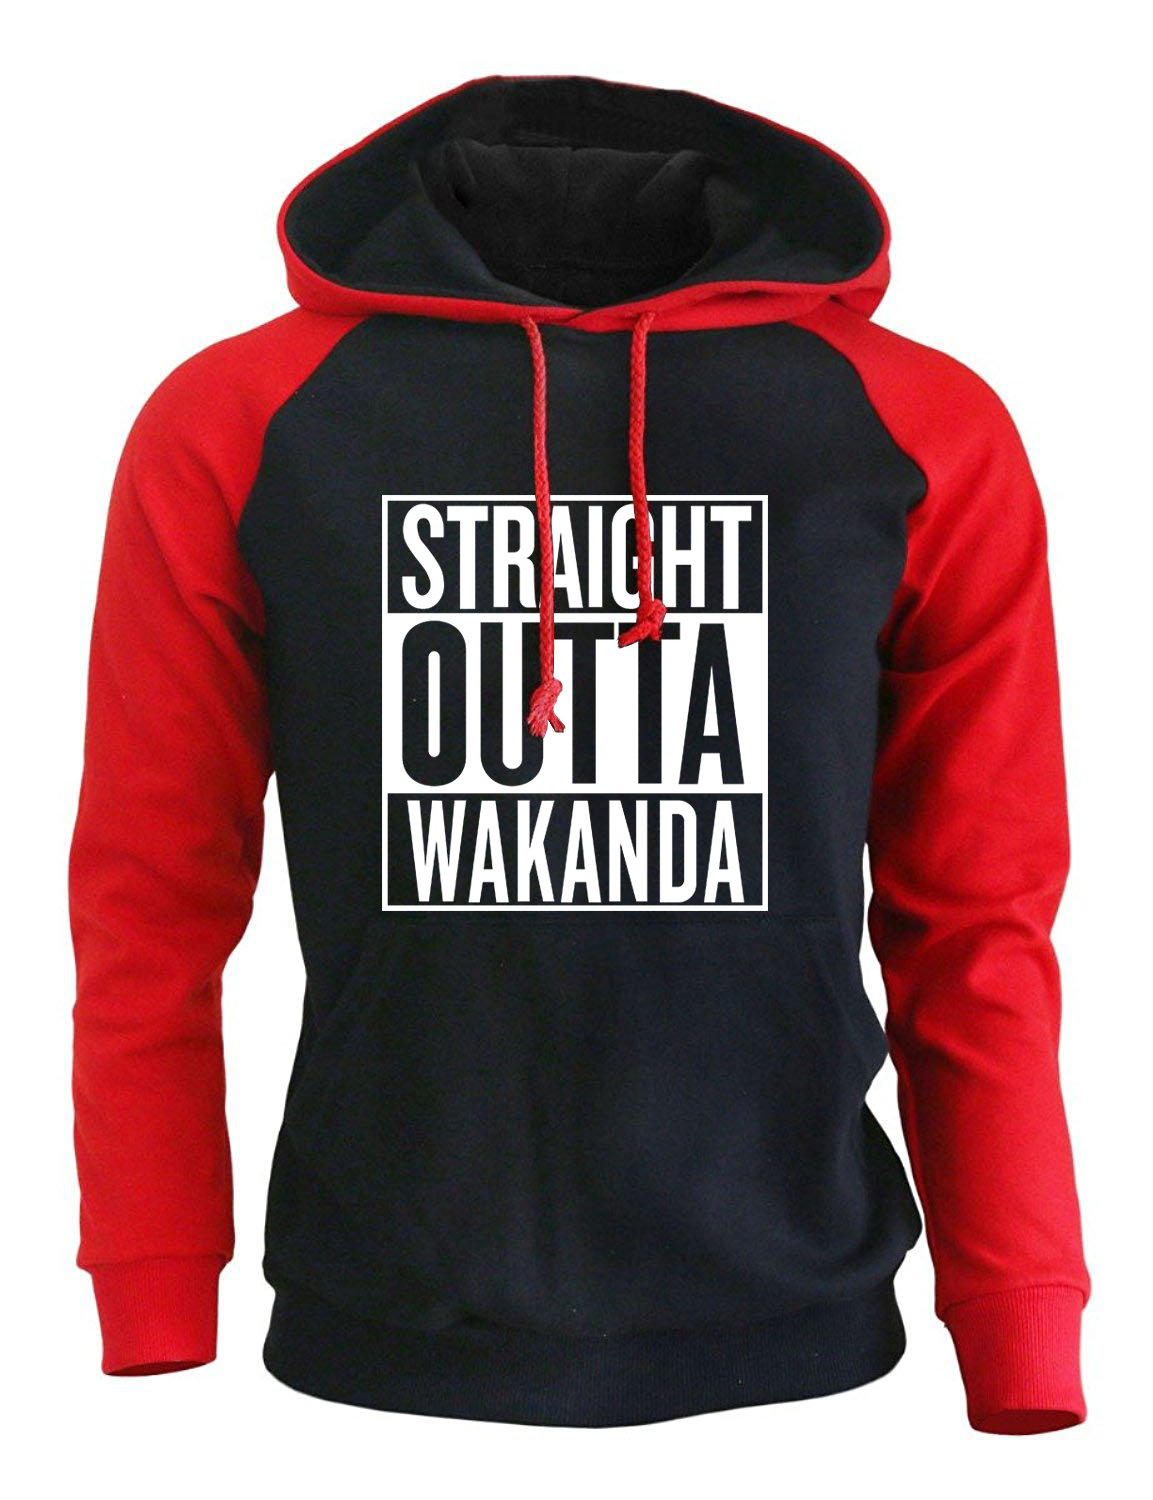 STRAIGHT OUTTA WAKANDA Men's Sweatshirts Black Panther Streetwear Hoody 2018 Fleece Autumn Winter Pullovers Harajuku Hoodies